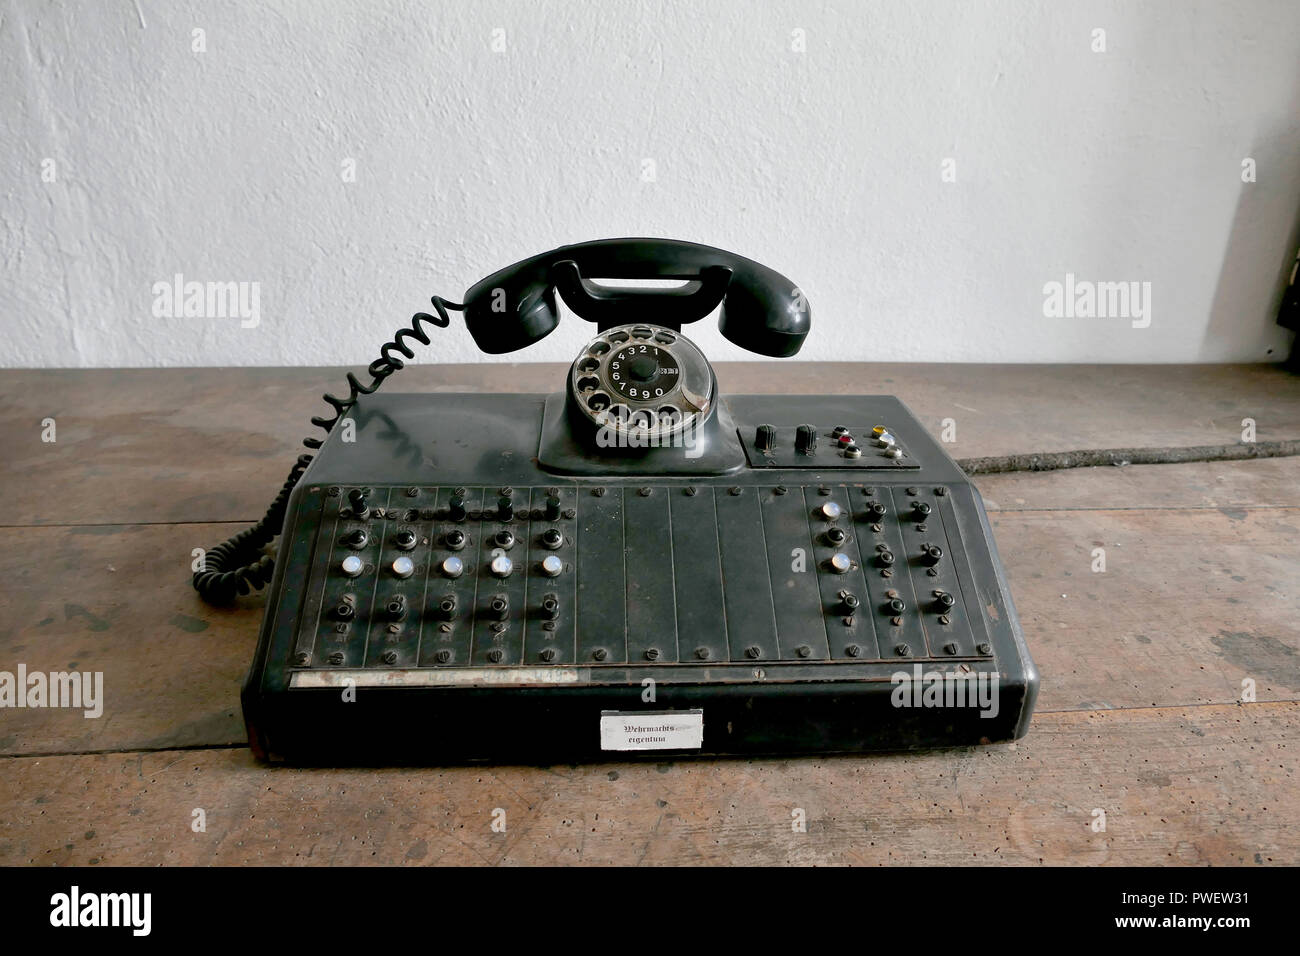 A telephone switchboard with notice 'Wehrmachts eigentum' in the entrance guard room. Castle Colditz or Schloss Colditz in Colditz, Germany. - Stock Image